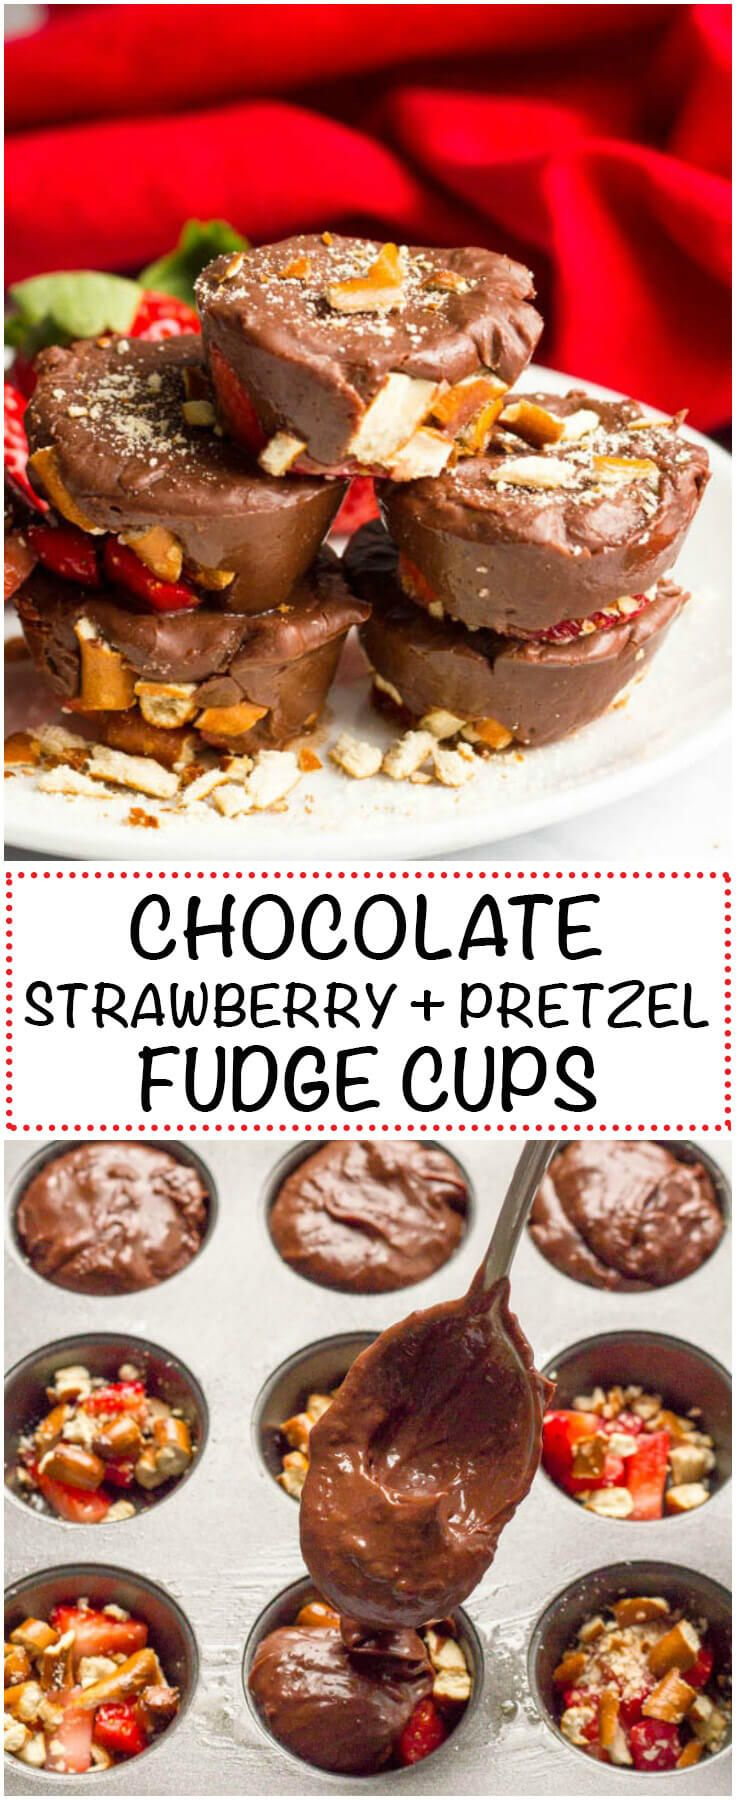 Chocolate strawberry pretzel fudge cups are an easy, no-bake dessert with just 5 ingredients!   www.familyfoodonthetable.com